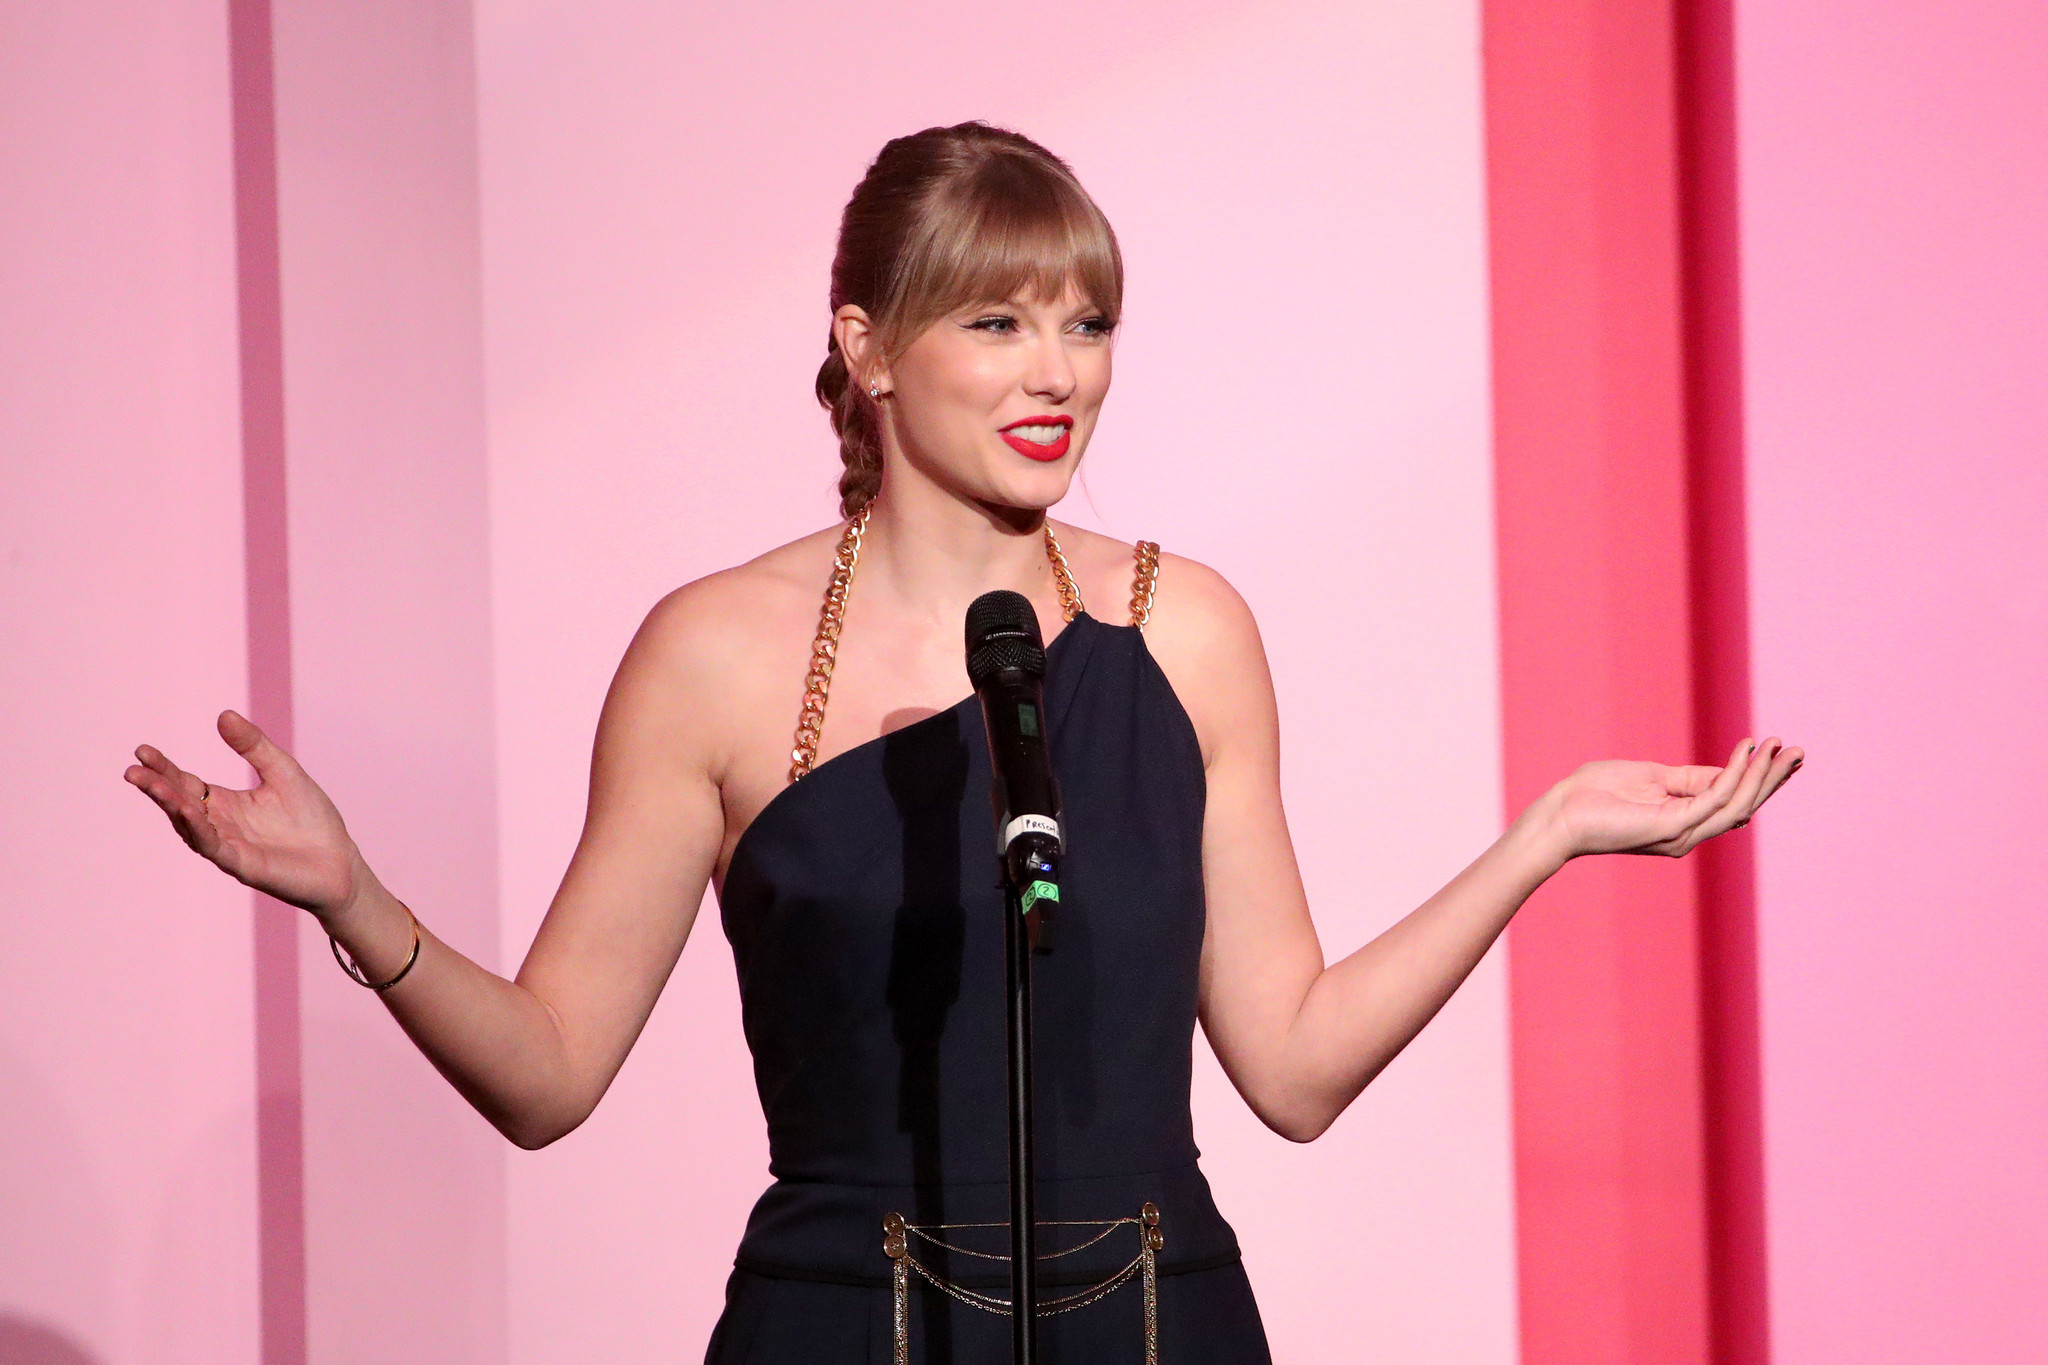 Taylor Swift directly calls out Scooter Braun and 'toxic male privilege' in Woman of the Decade acceptance speech